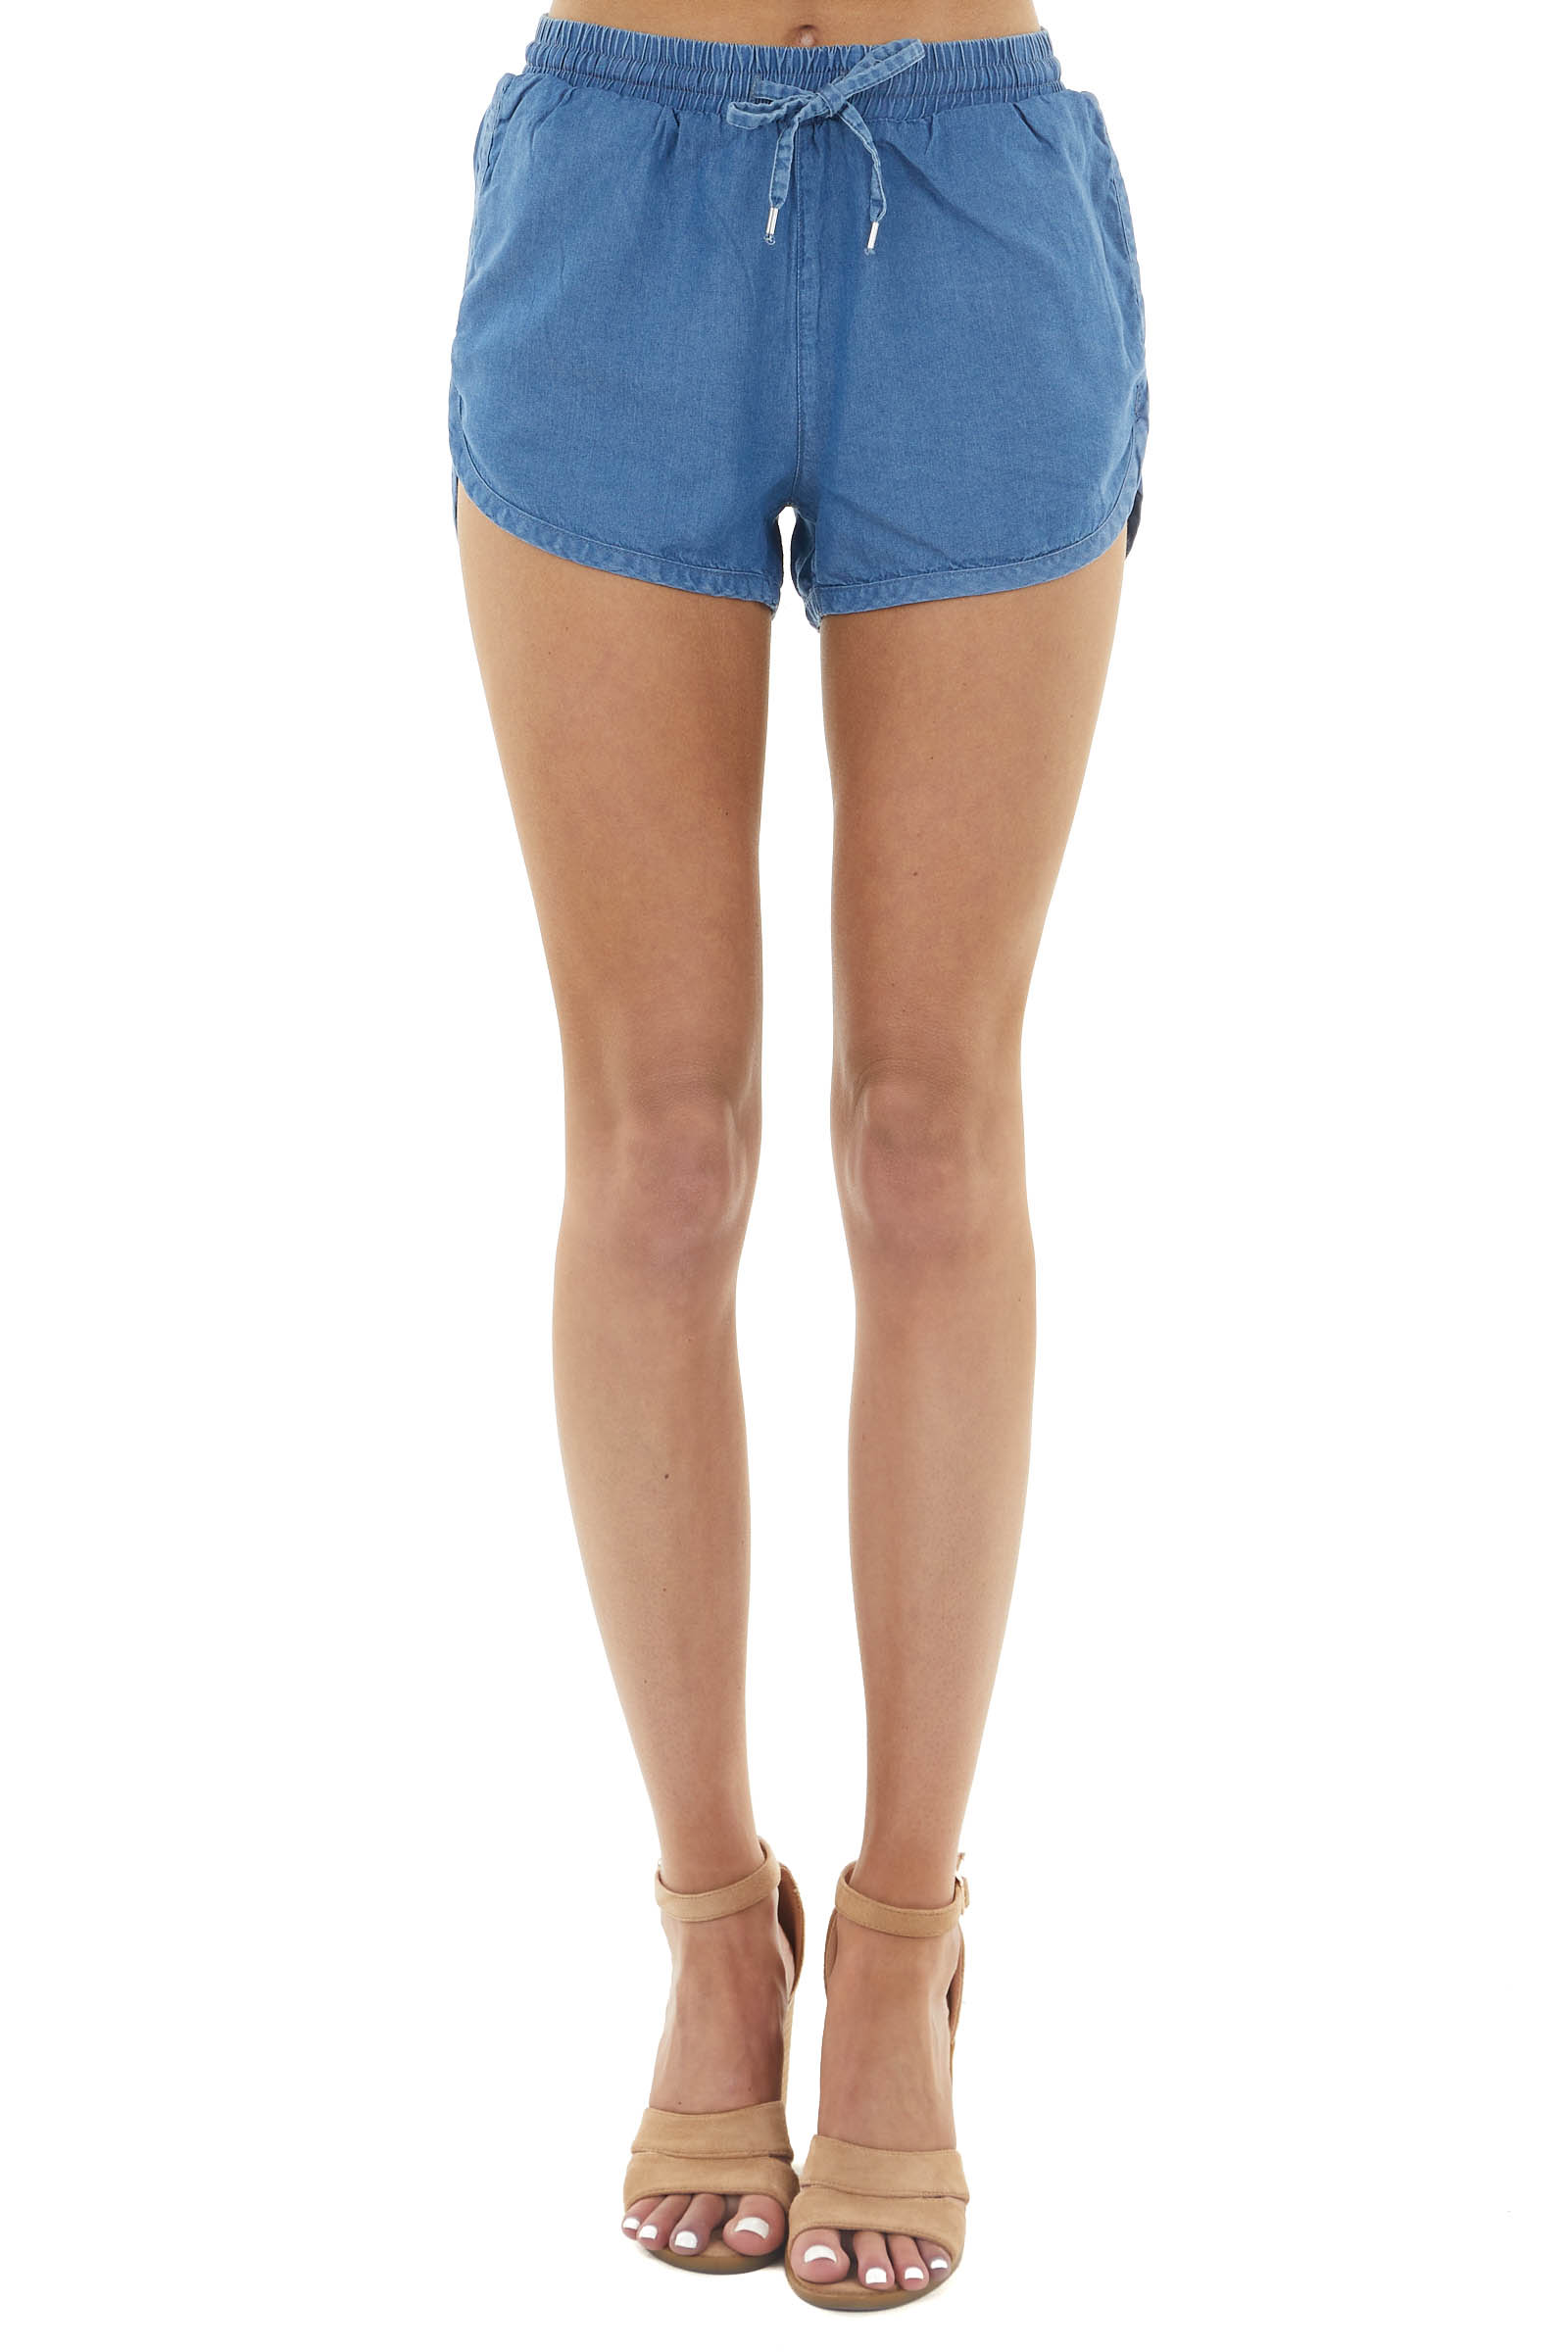 Dusty Blue High Rise Drawstring Shorts with Side Pockets